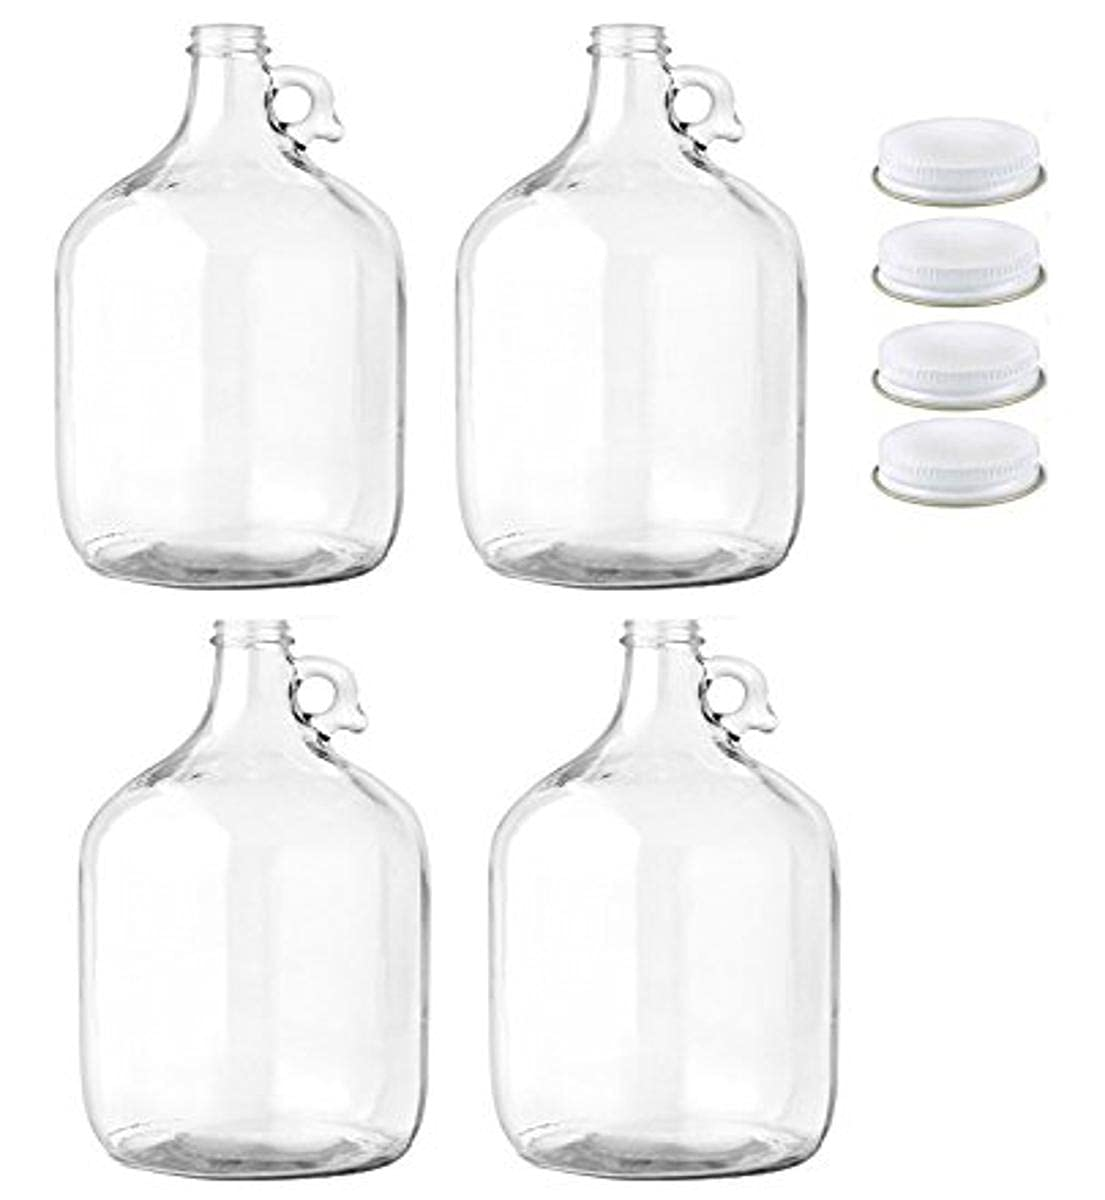 Free shipping anywhere in the nation FastRack Glass Japan Maker New Water Bottle Includes 38mm Metal Screw 1 Cap ga